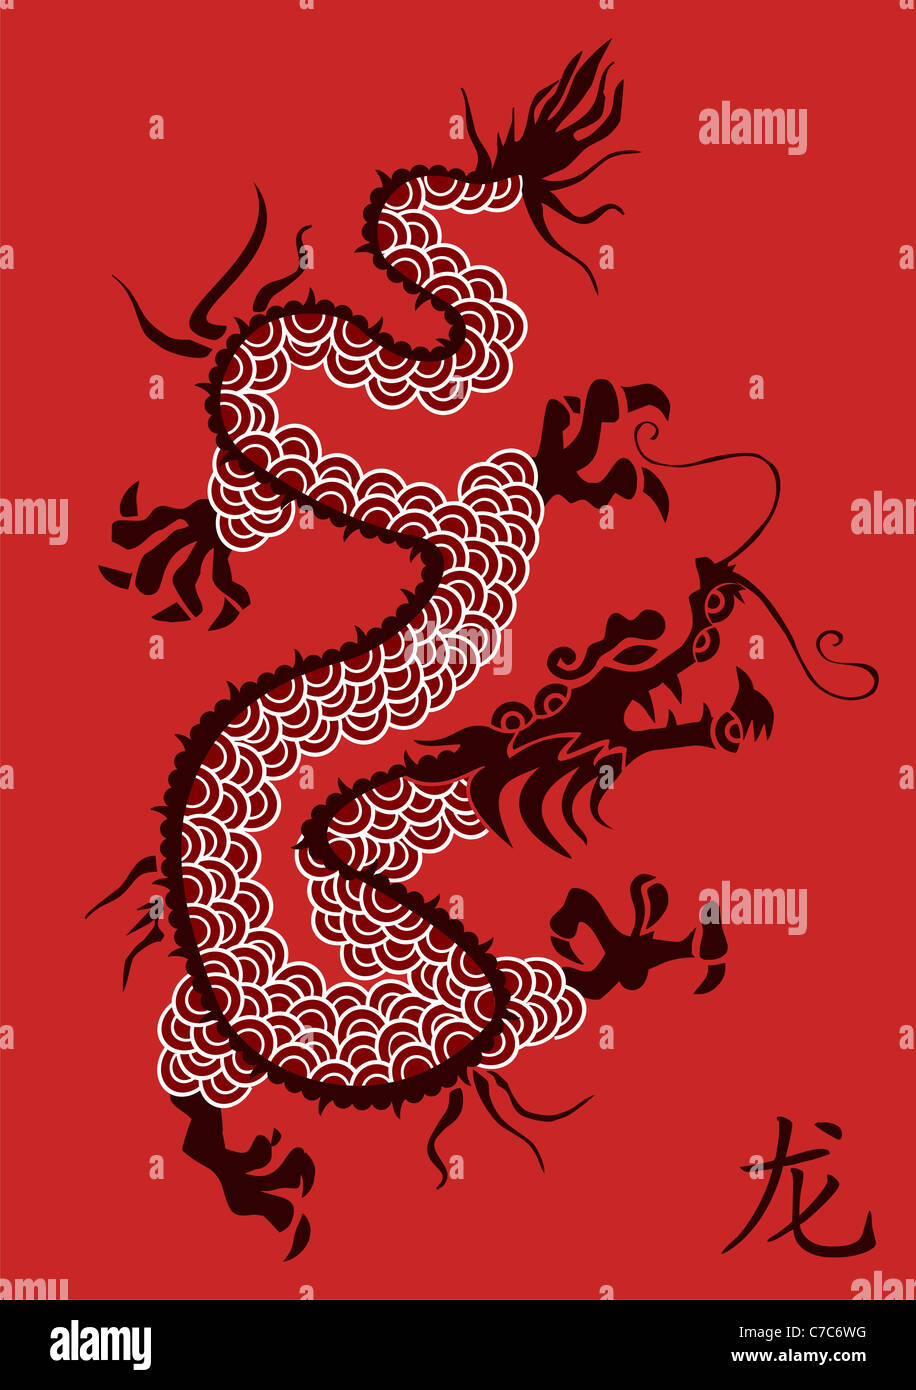 Illustration Of Ancient Chinese Dragon Silhouette On Red Background